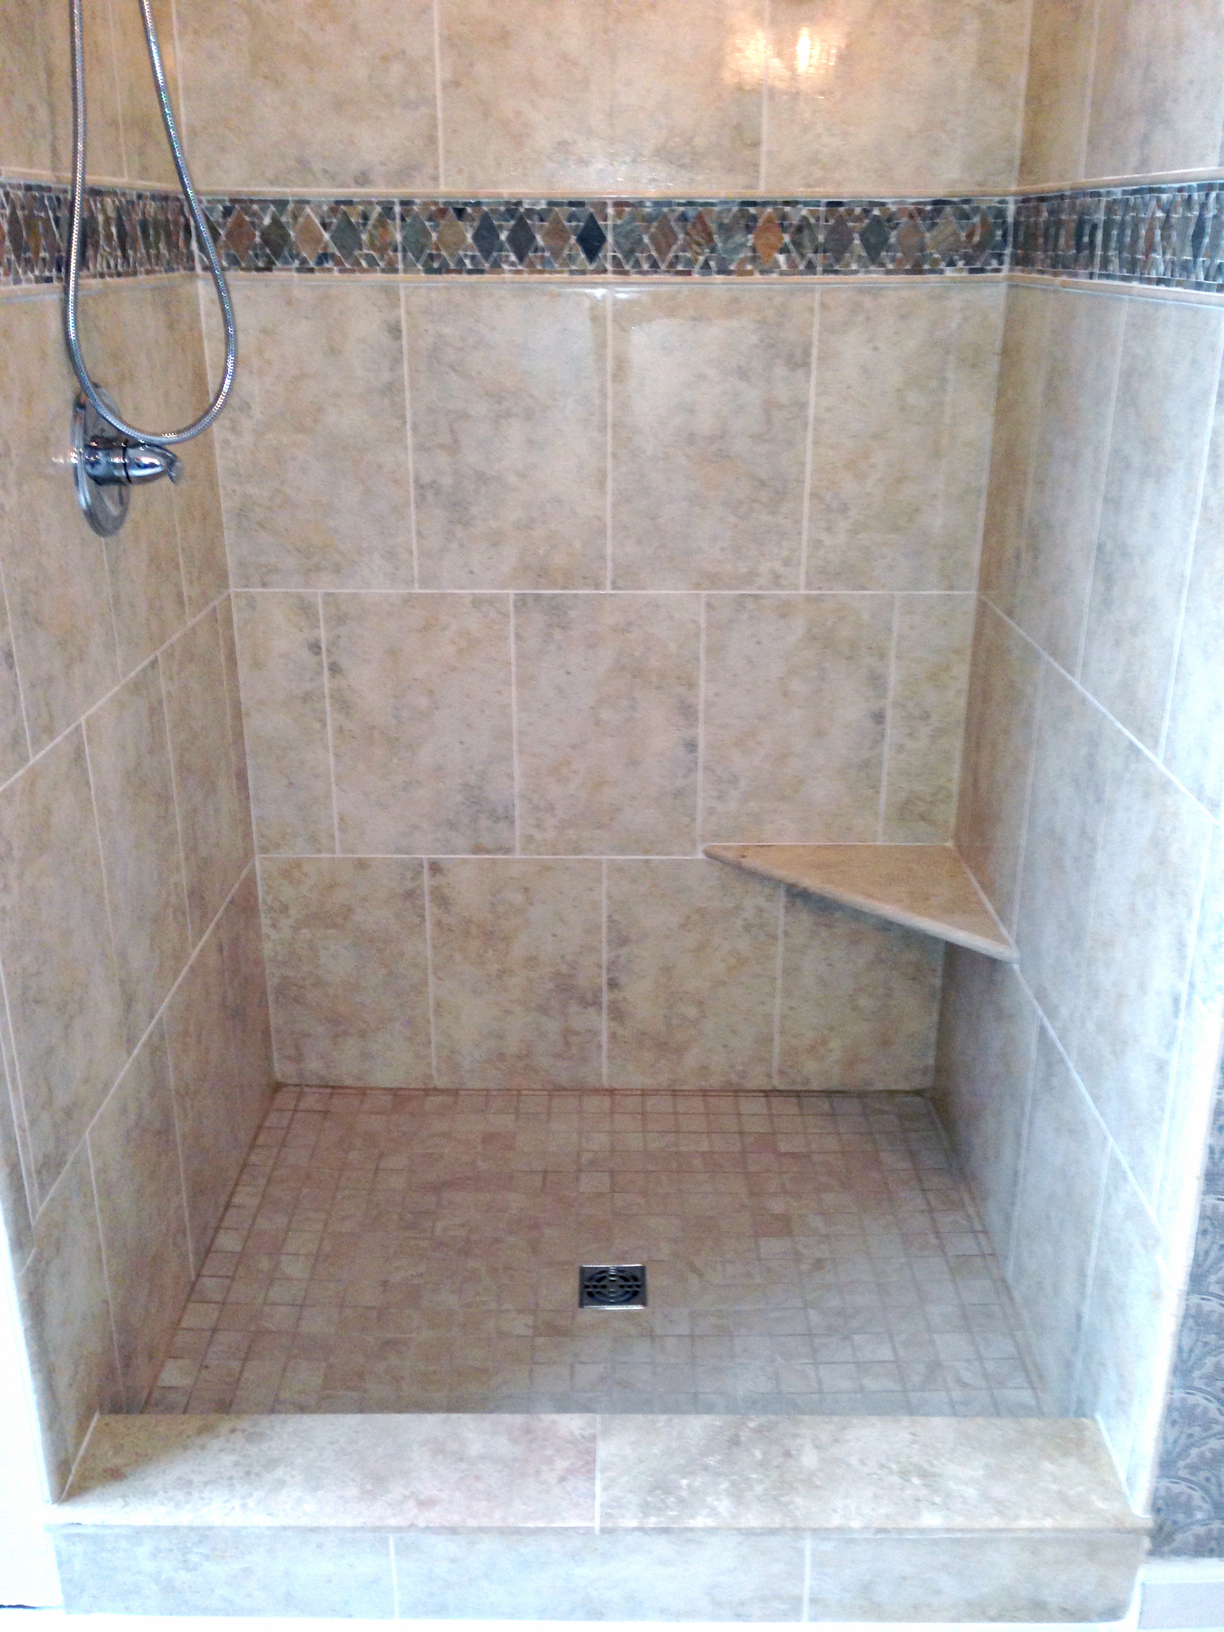 Tile flooring complete custom tiling stone shower with diamond tile inset interior dailygadgetfo Image collections